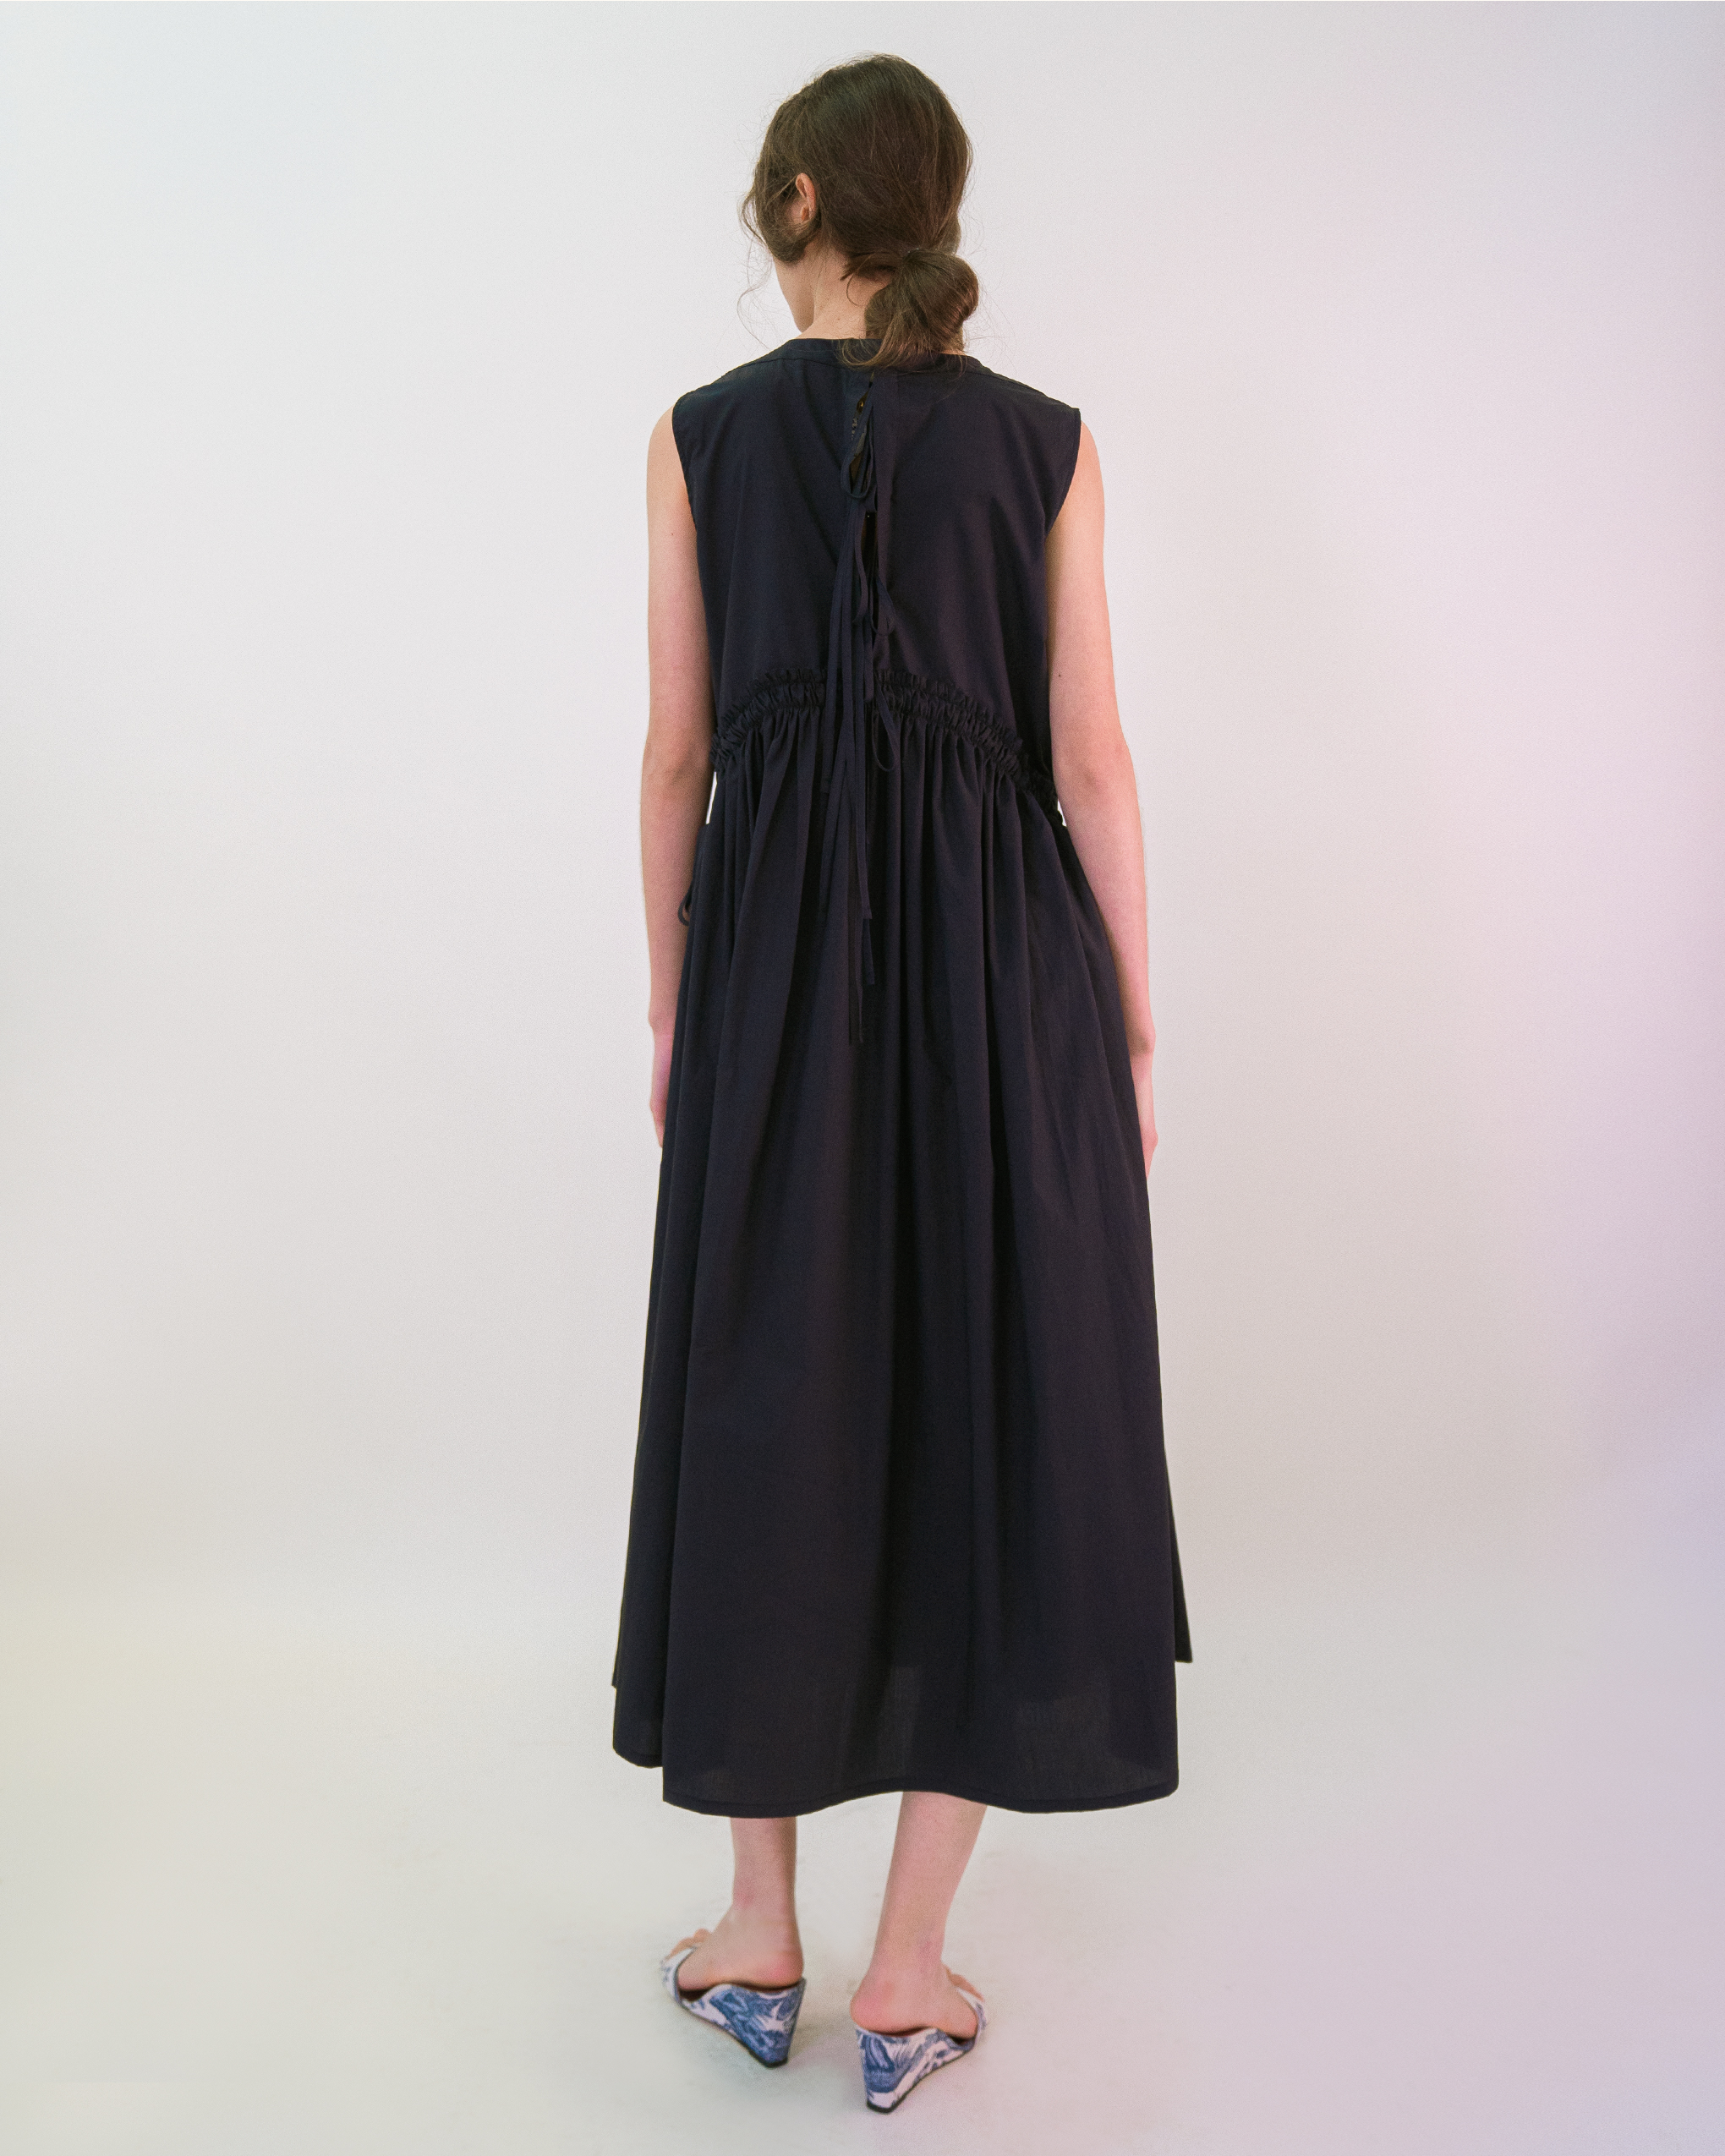 A woman is wearing a navy curved shirred waist side tie dress.